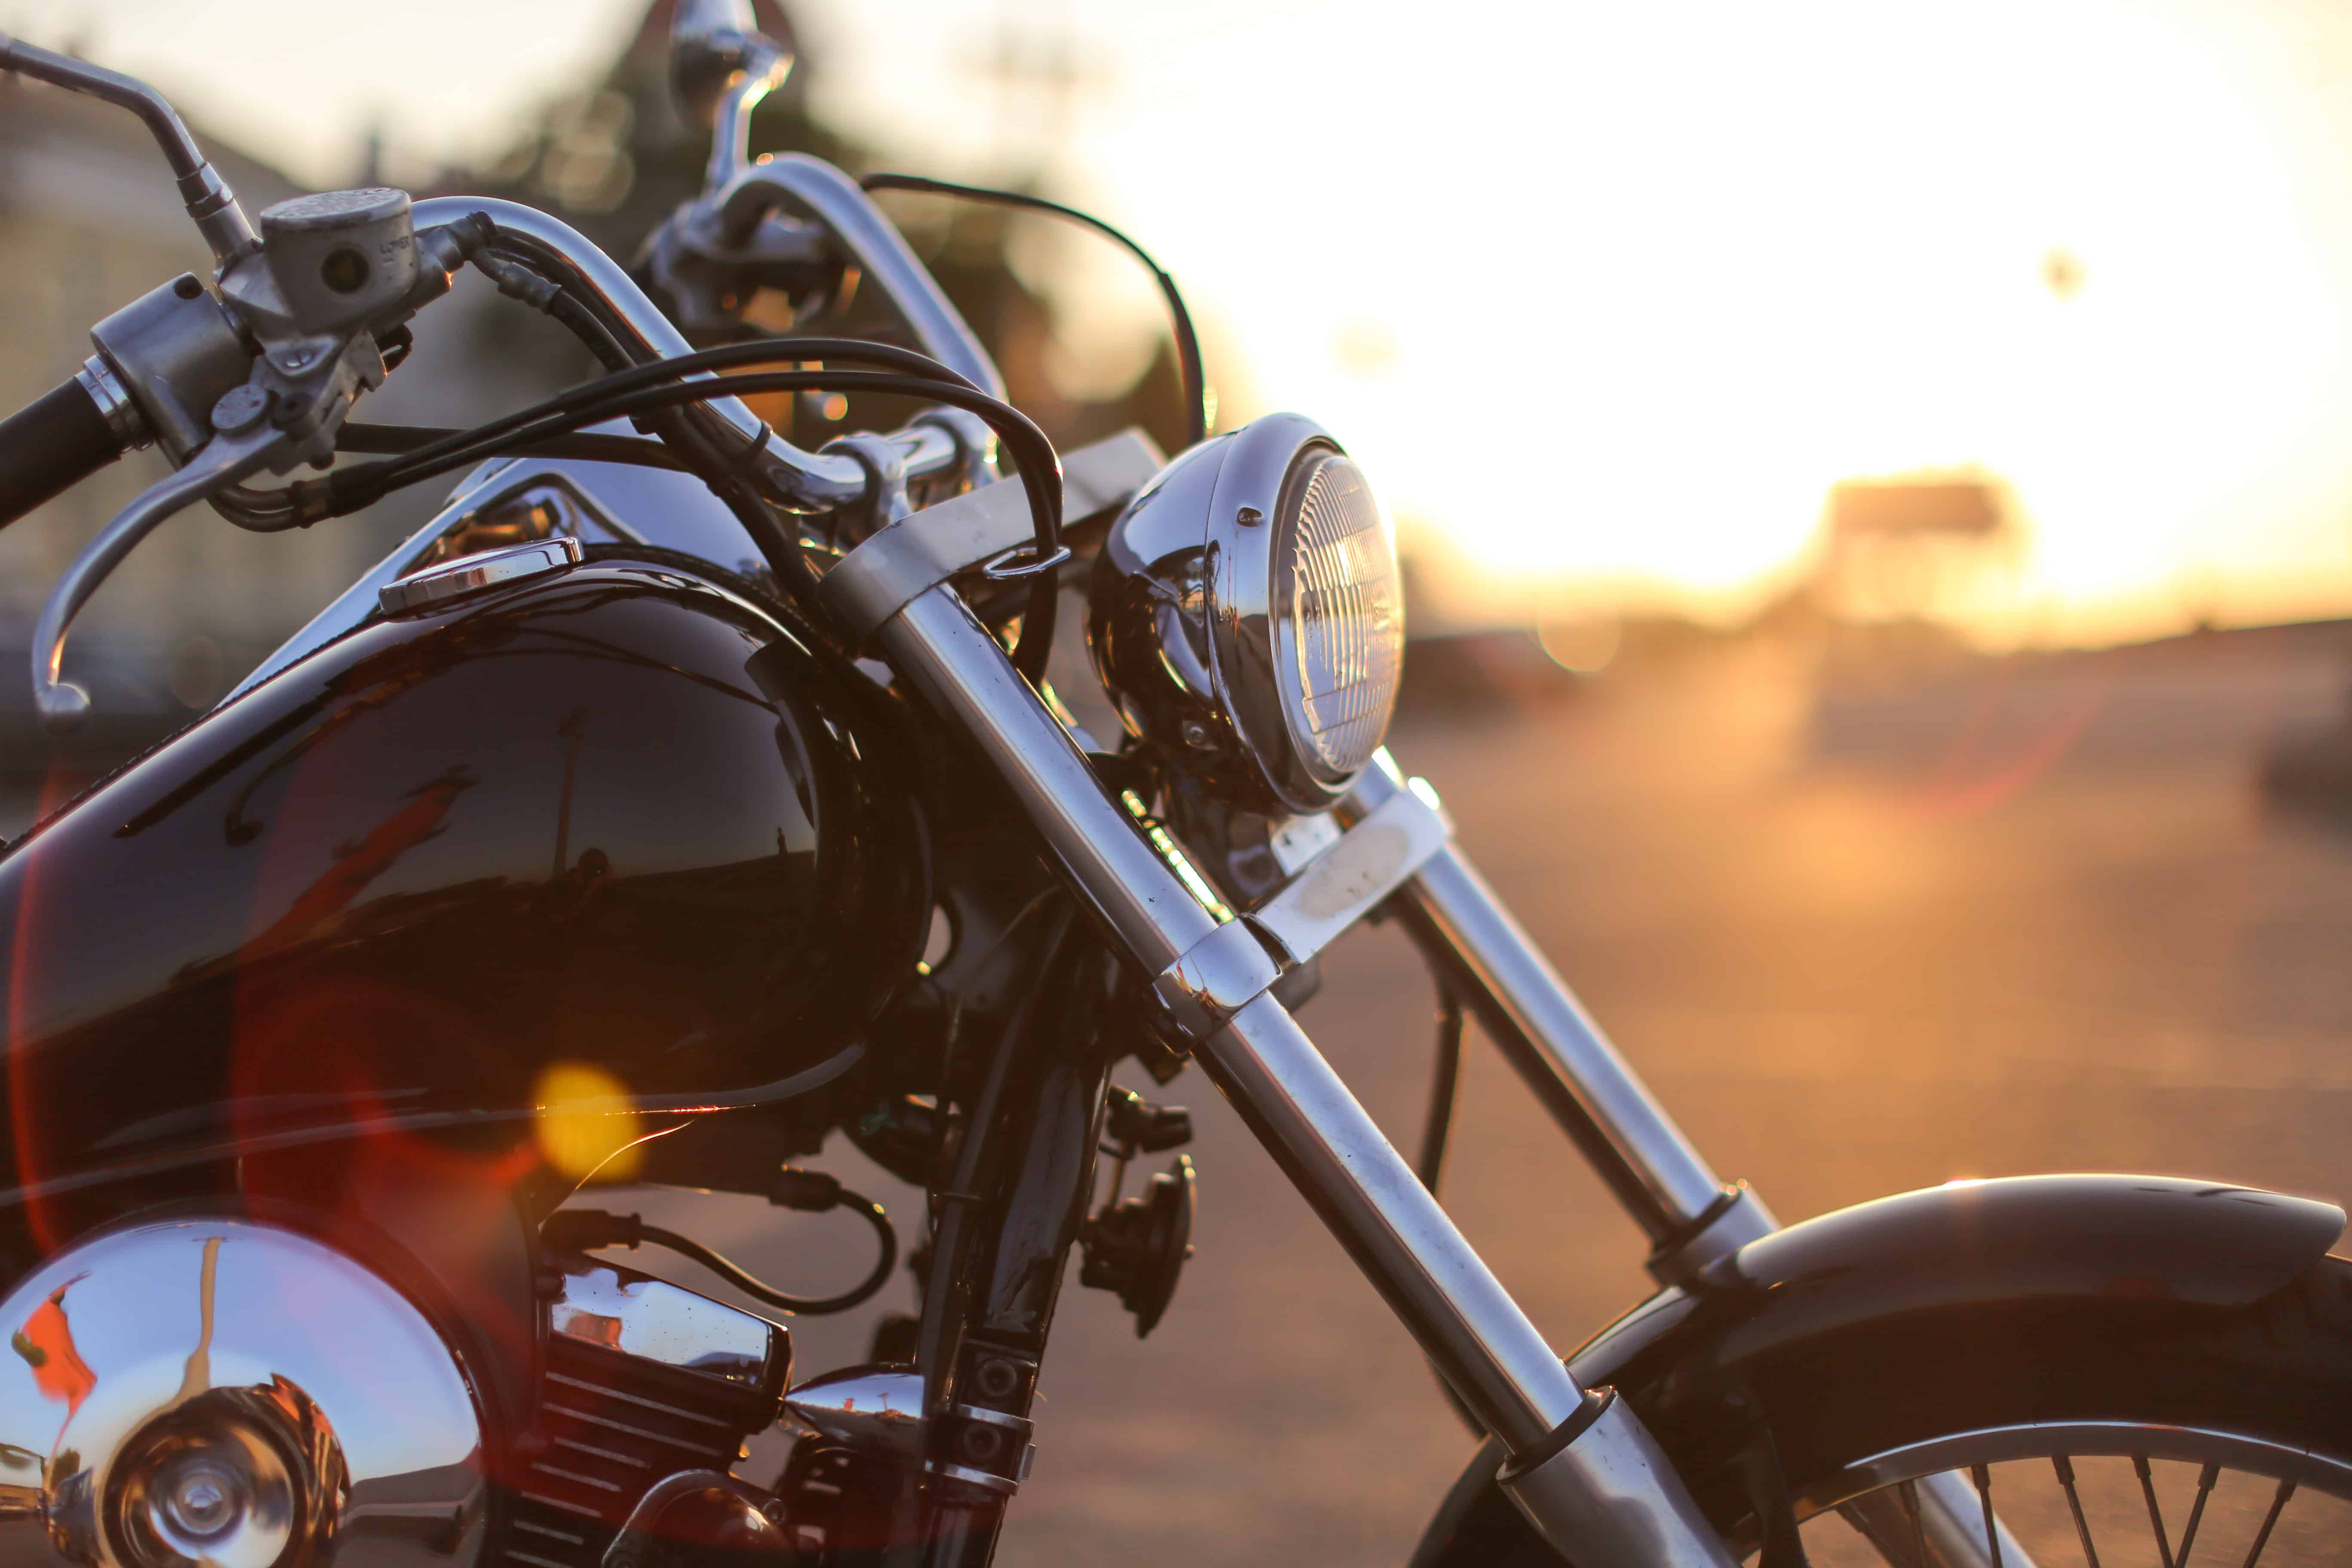 1 Hurt in Motorcycle Accident on West Broadway Street and L Street [Needles, CA]